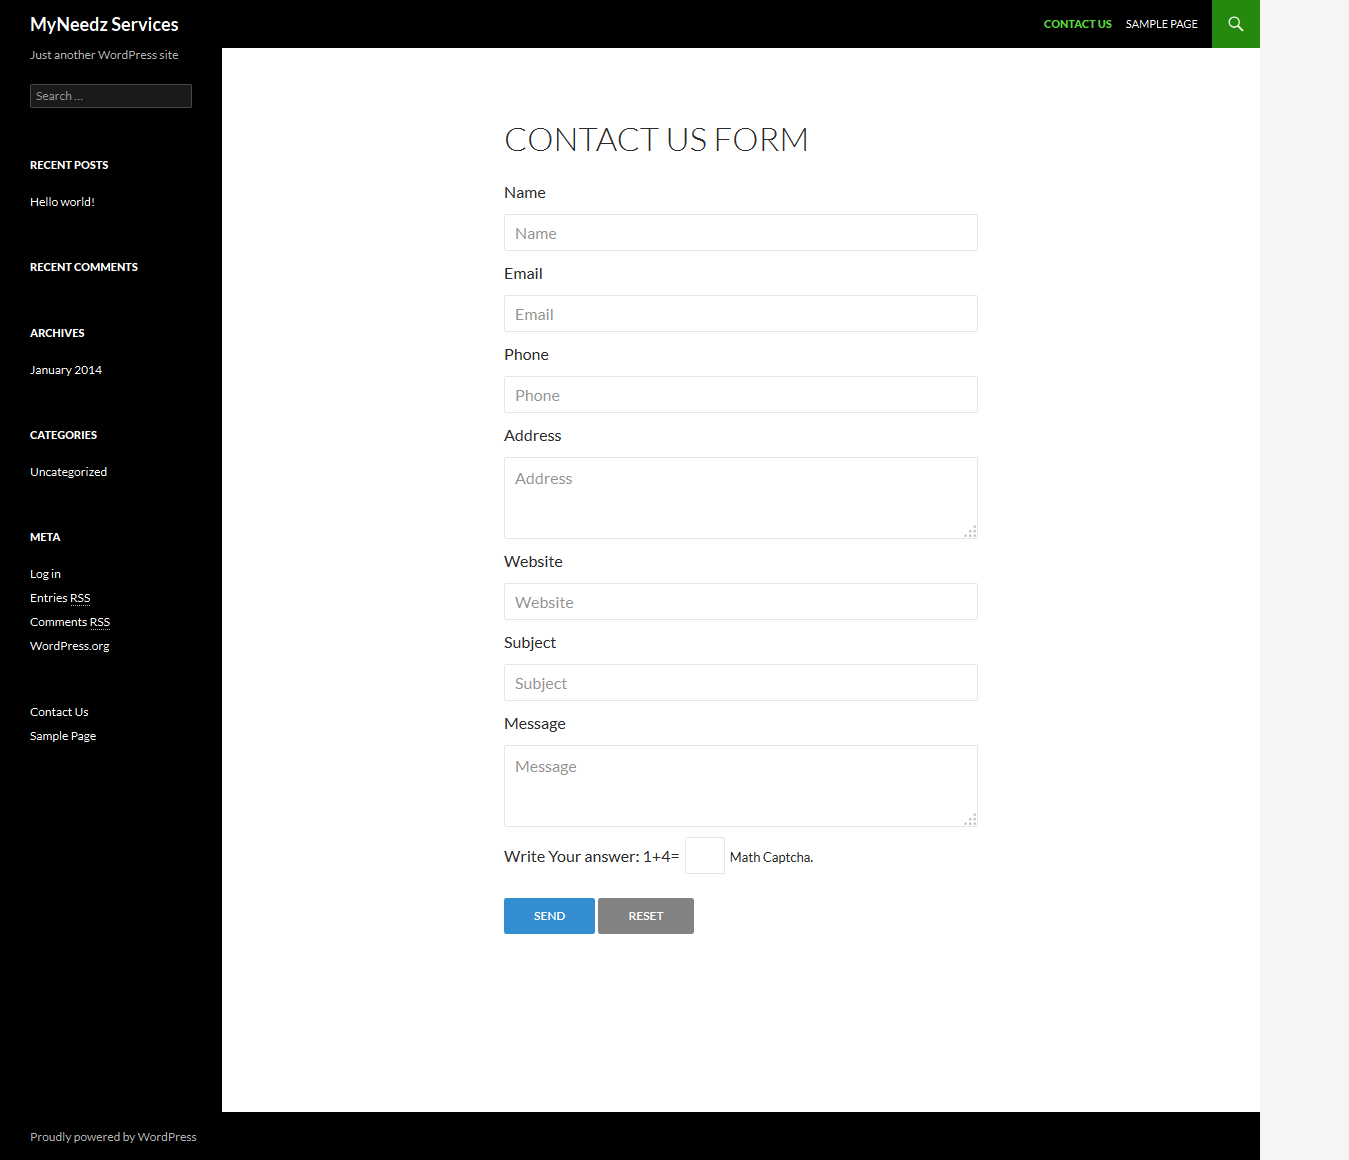 mn-contact-form screenshot 1